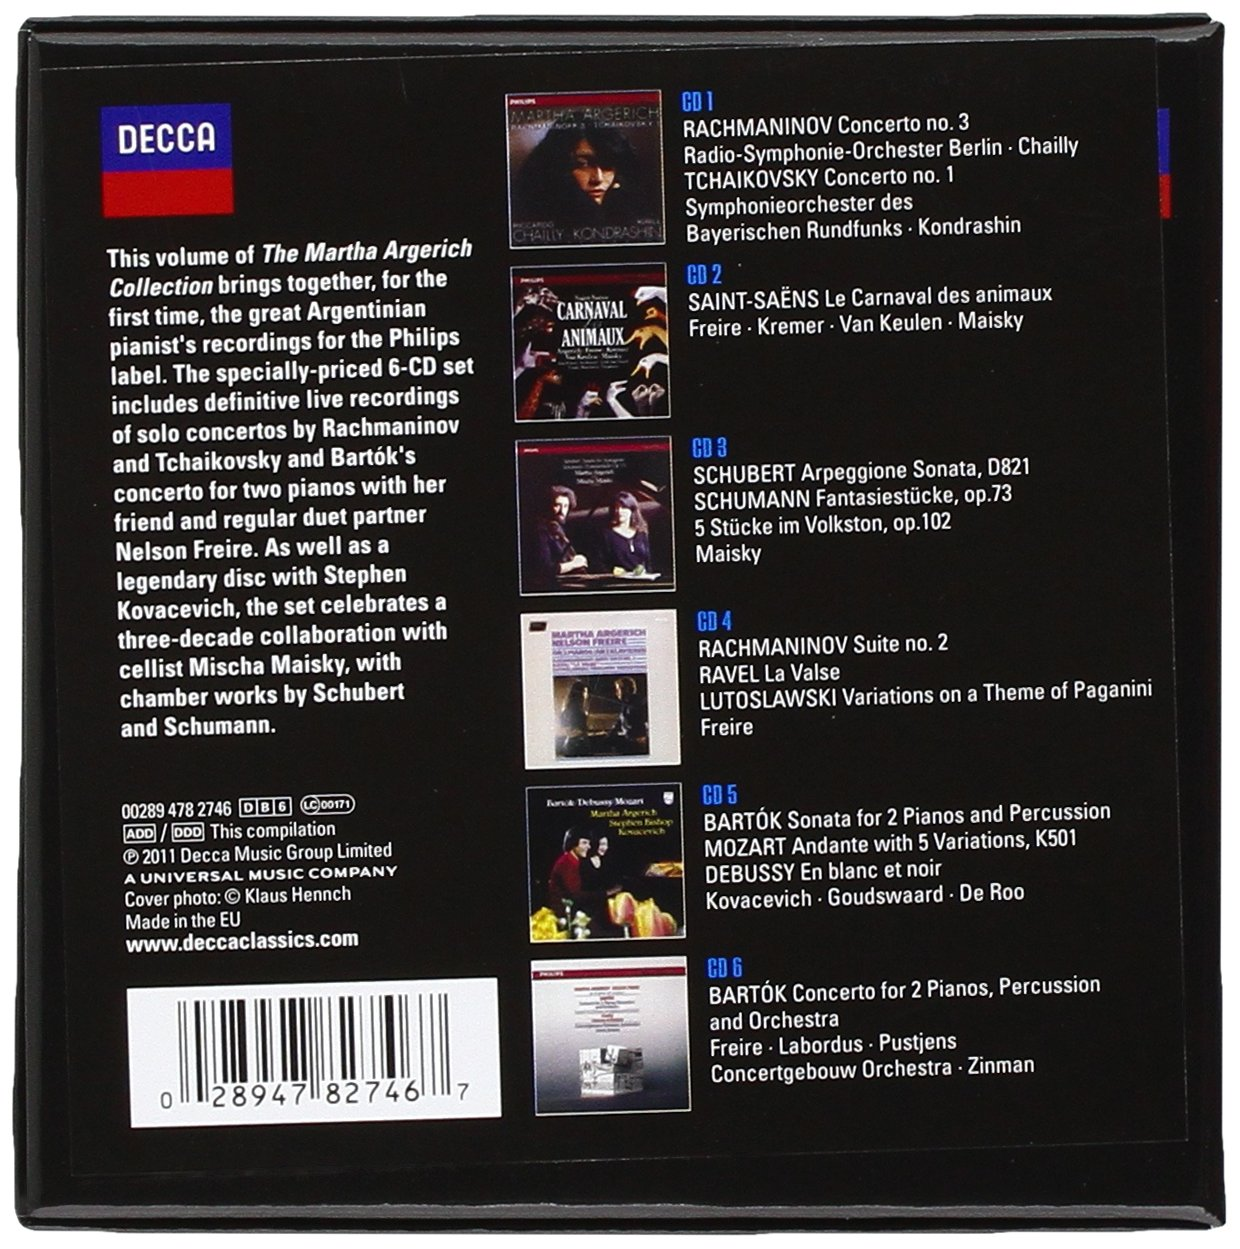 The Martha Argerich Collection 4 [6 CD Box Set] by Decca